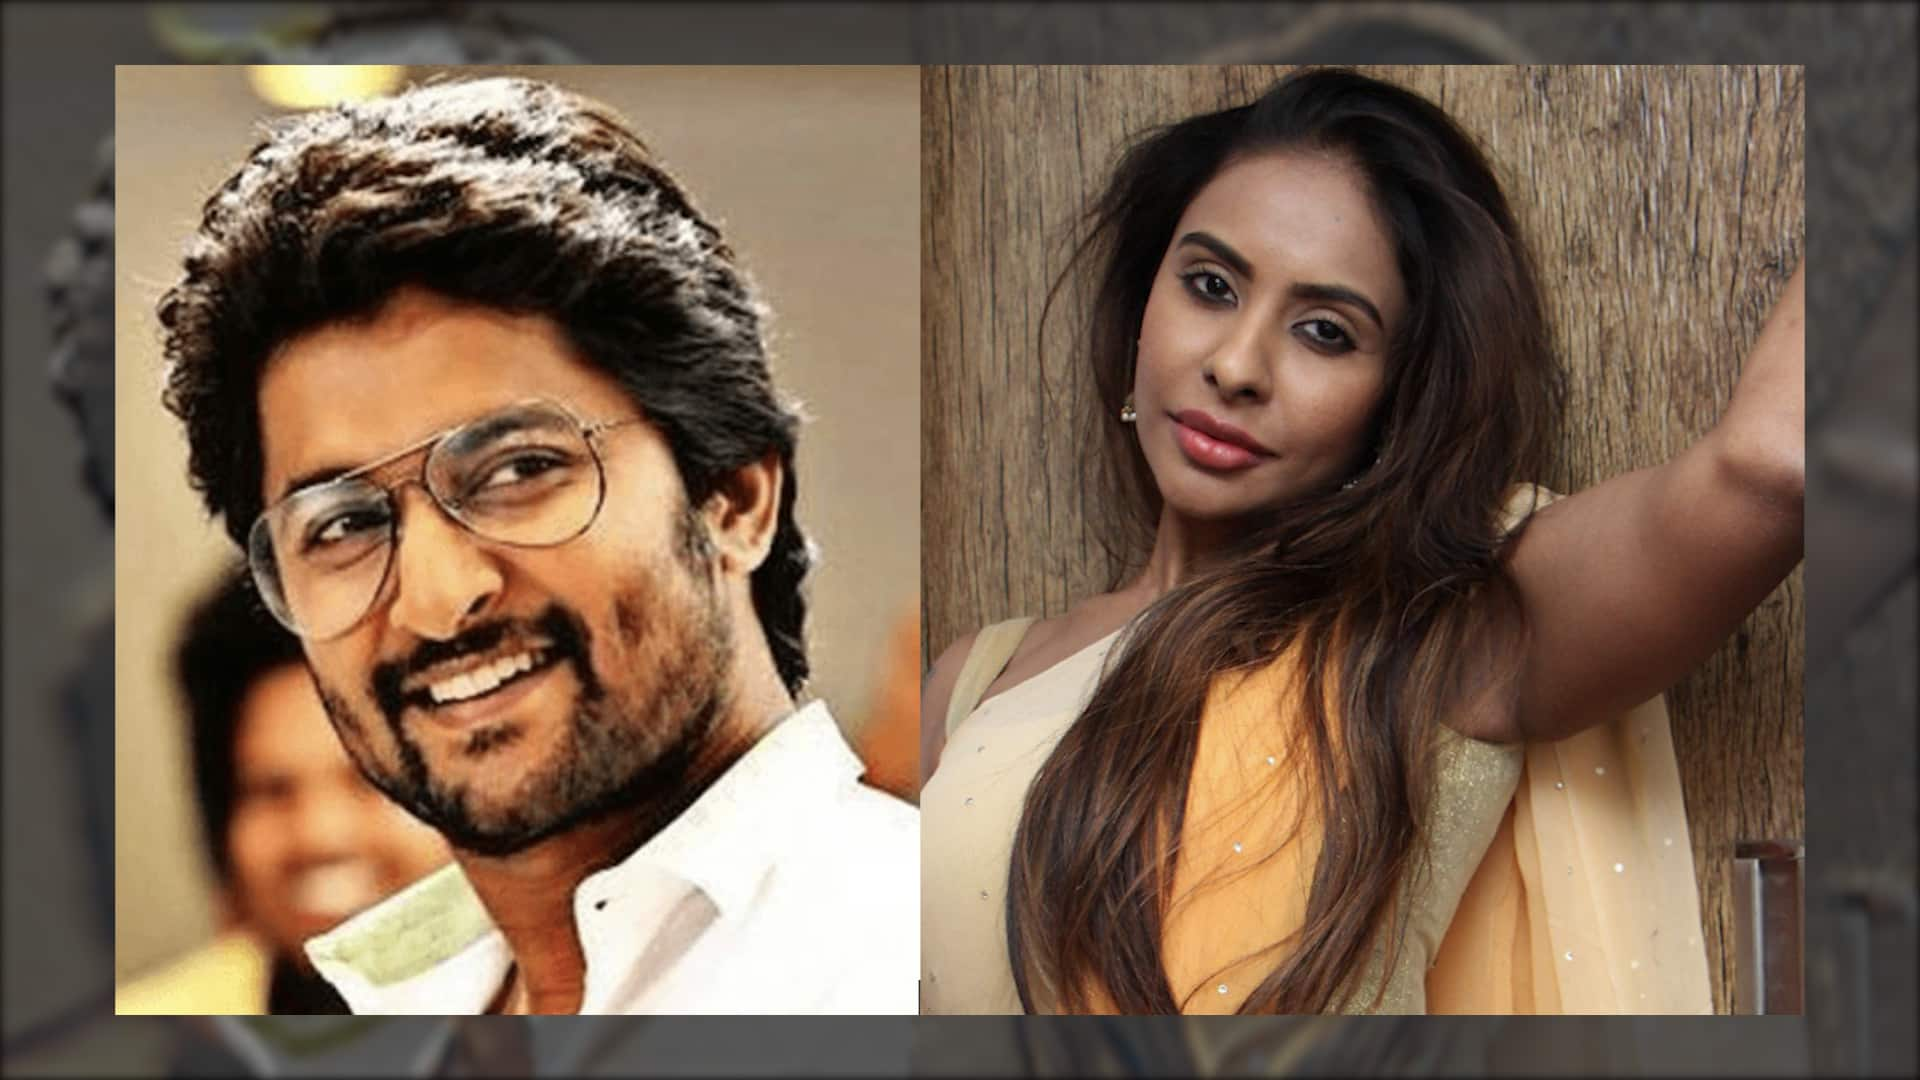 Swear on family and career that you didn't f**k me, Sri Reddy asks Nani